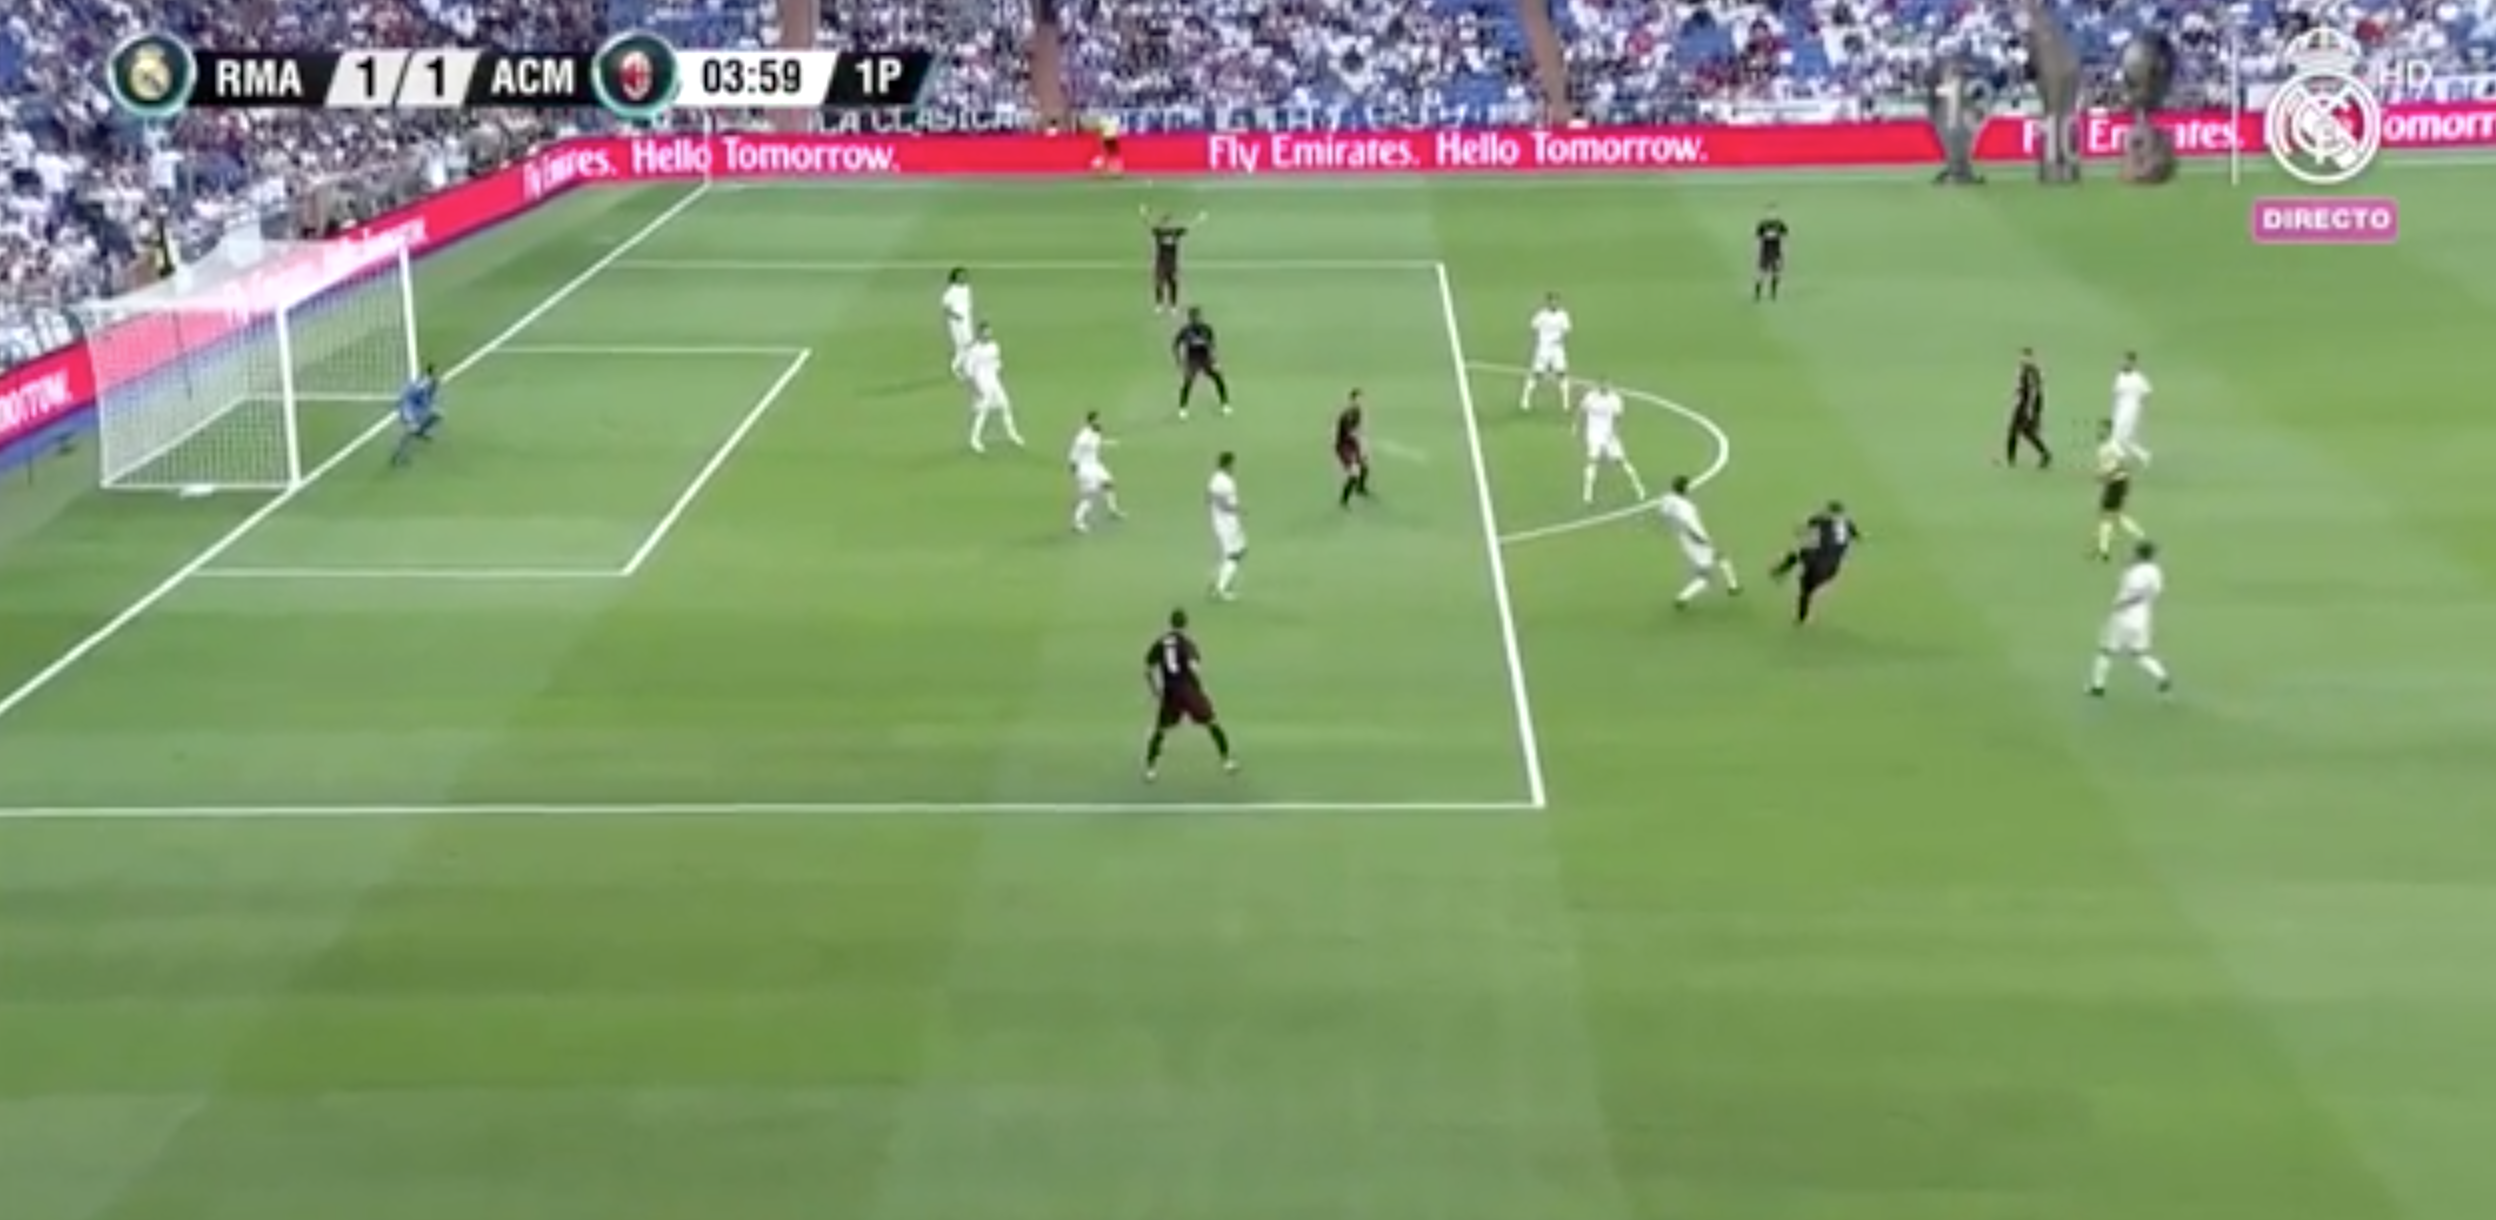 WATCH: 4 Minutes Into His AC Milan Debut Higuain Scores With His First Shot And It's A Cracker